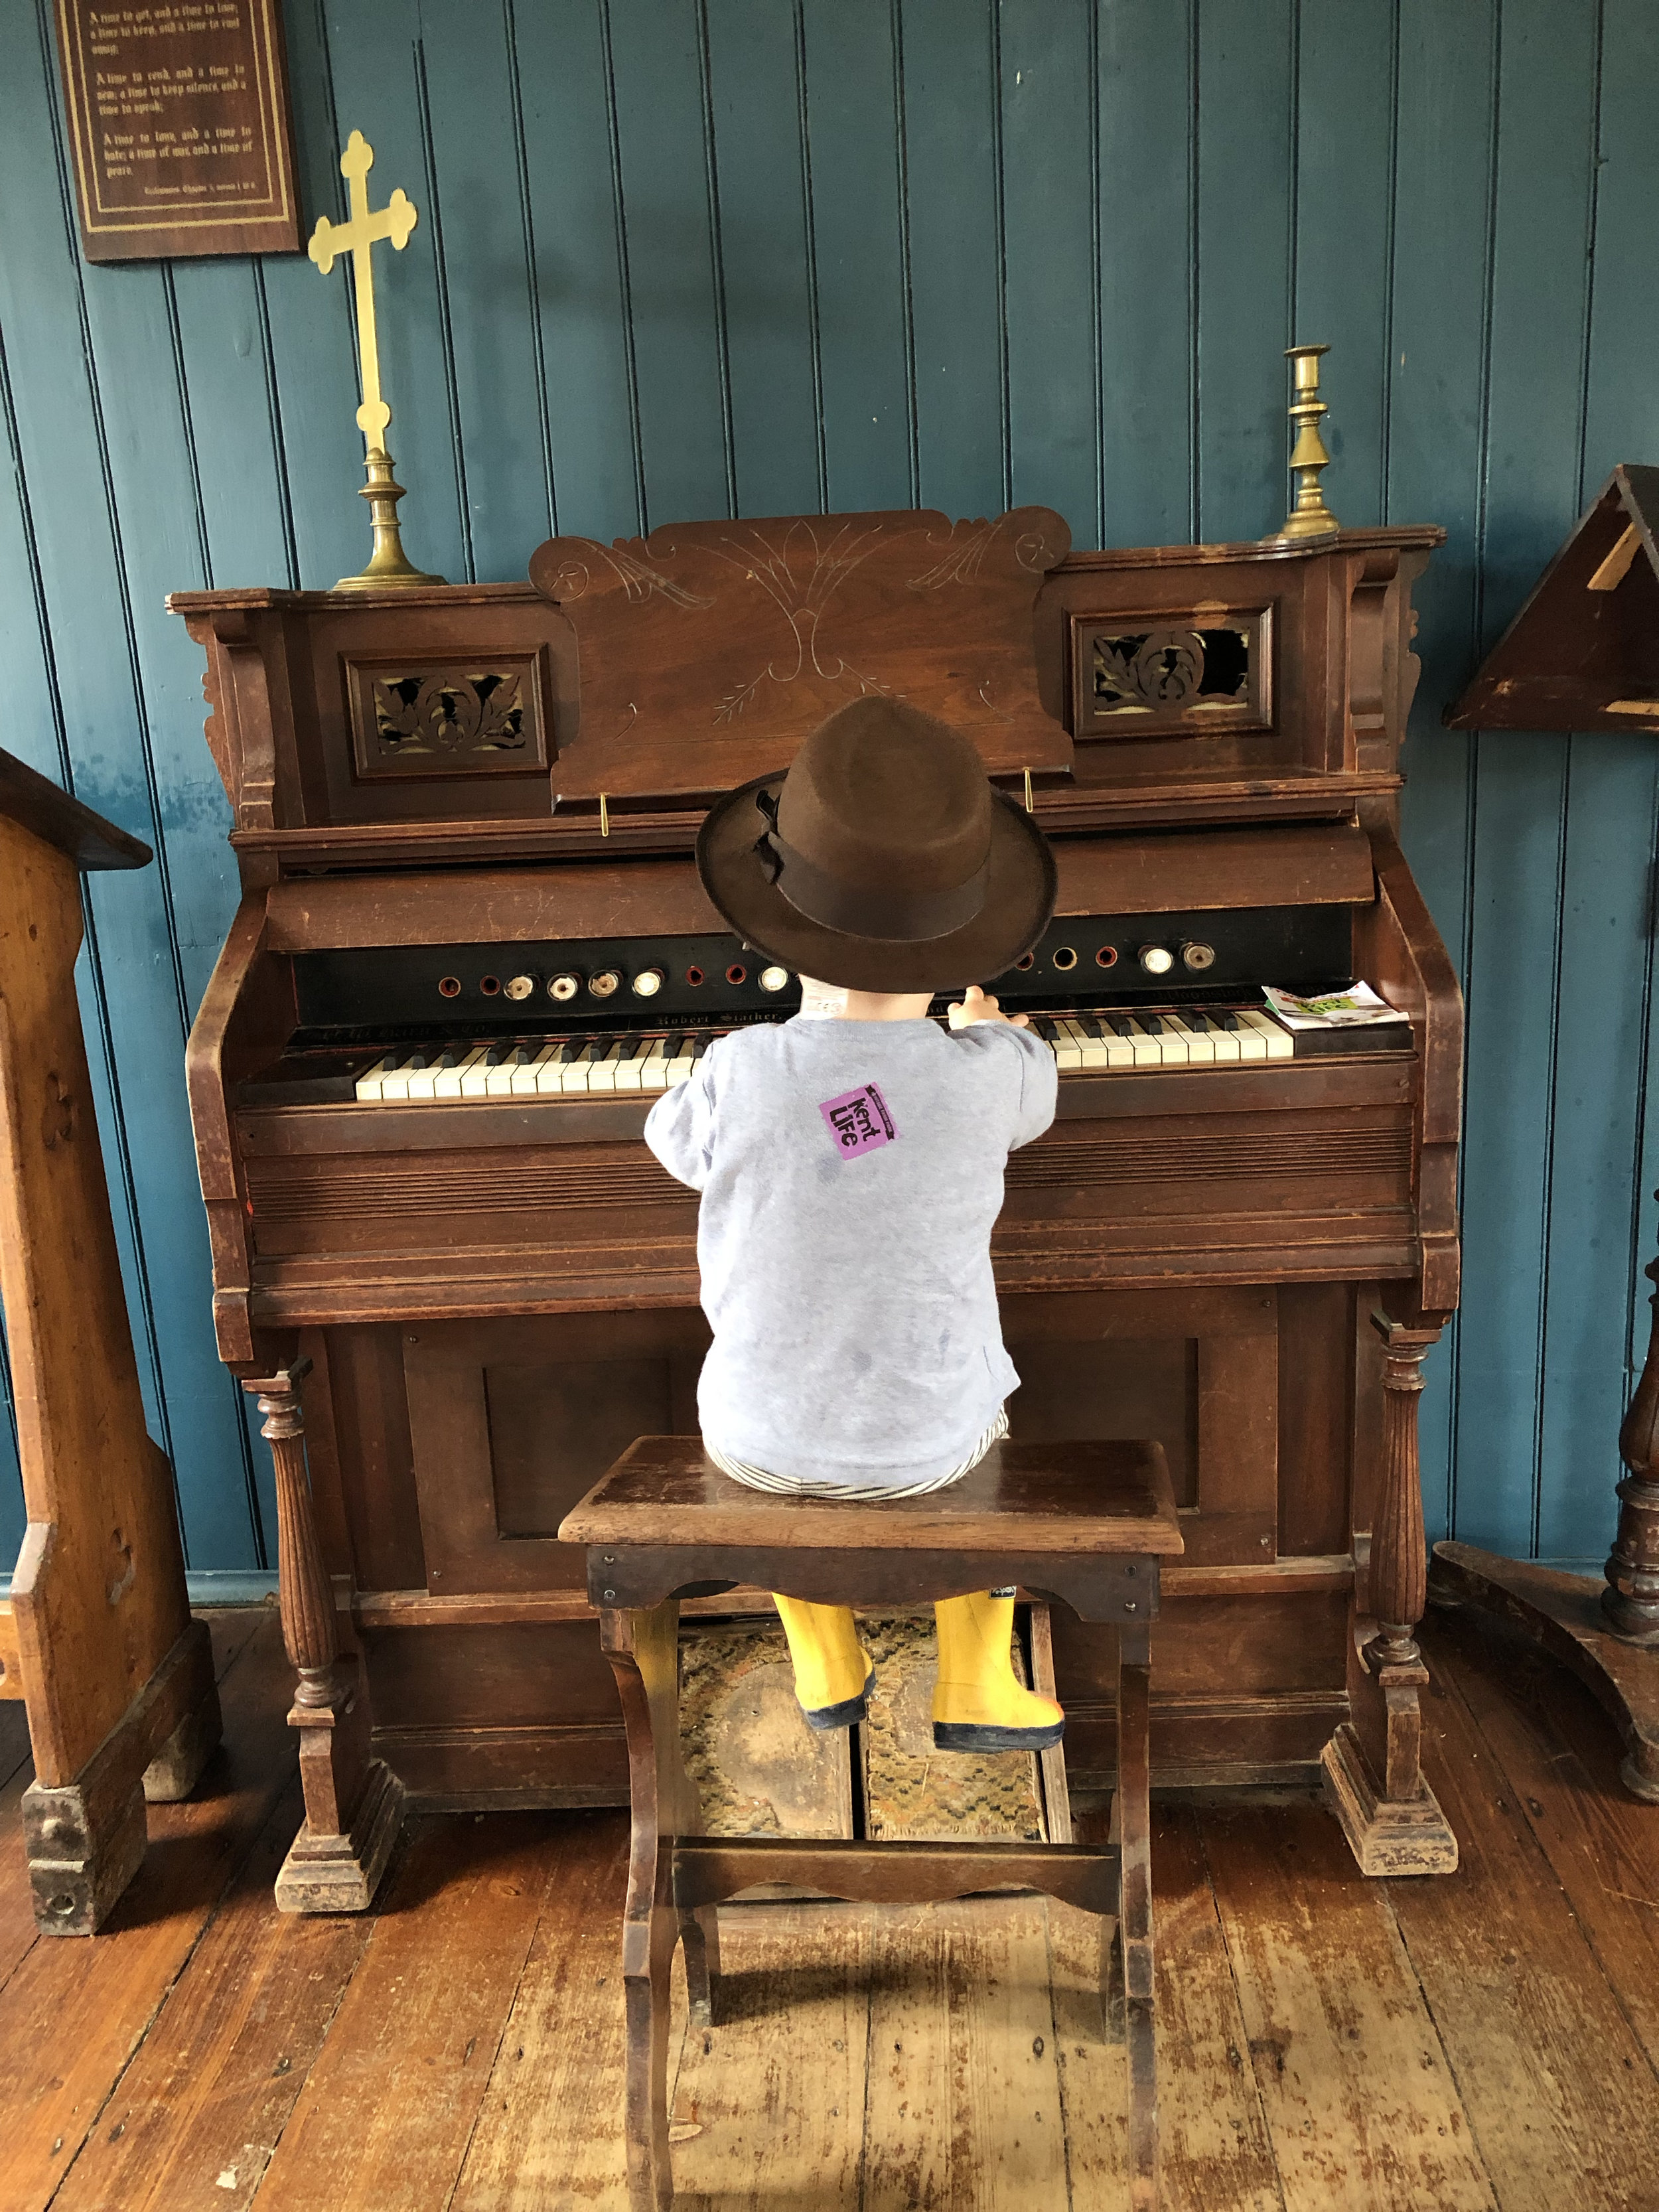 kent-life-farm-maidstone-family-day-out-support-local-magazine-piano-playing.jpg